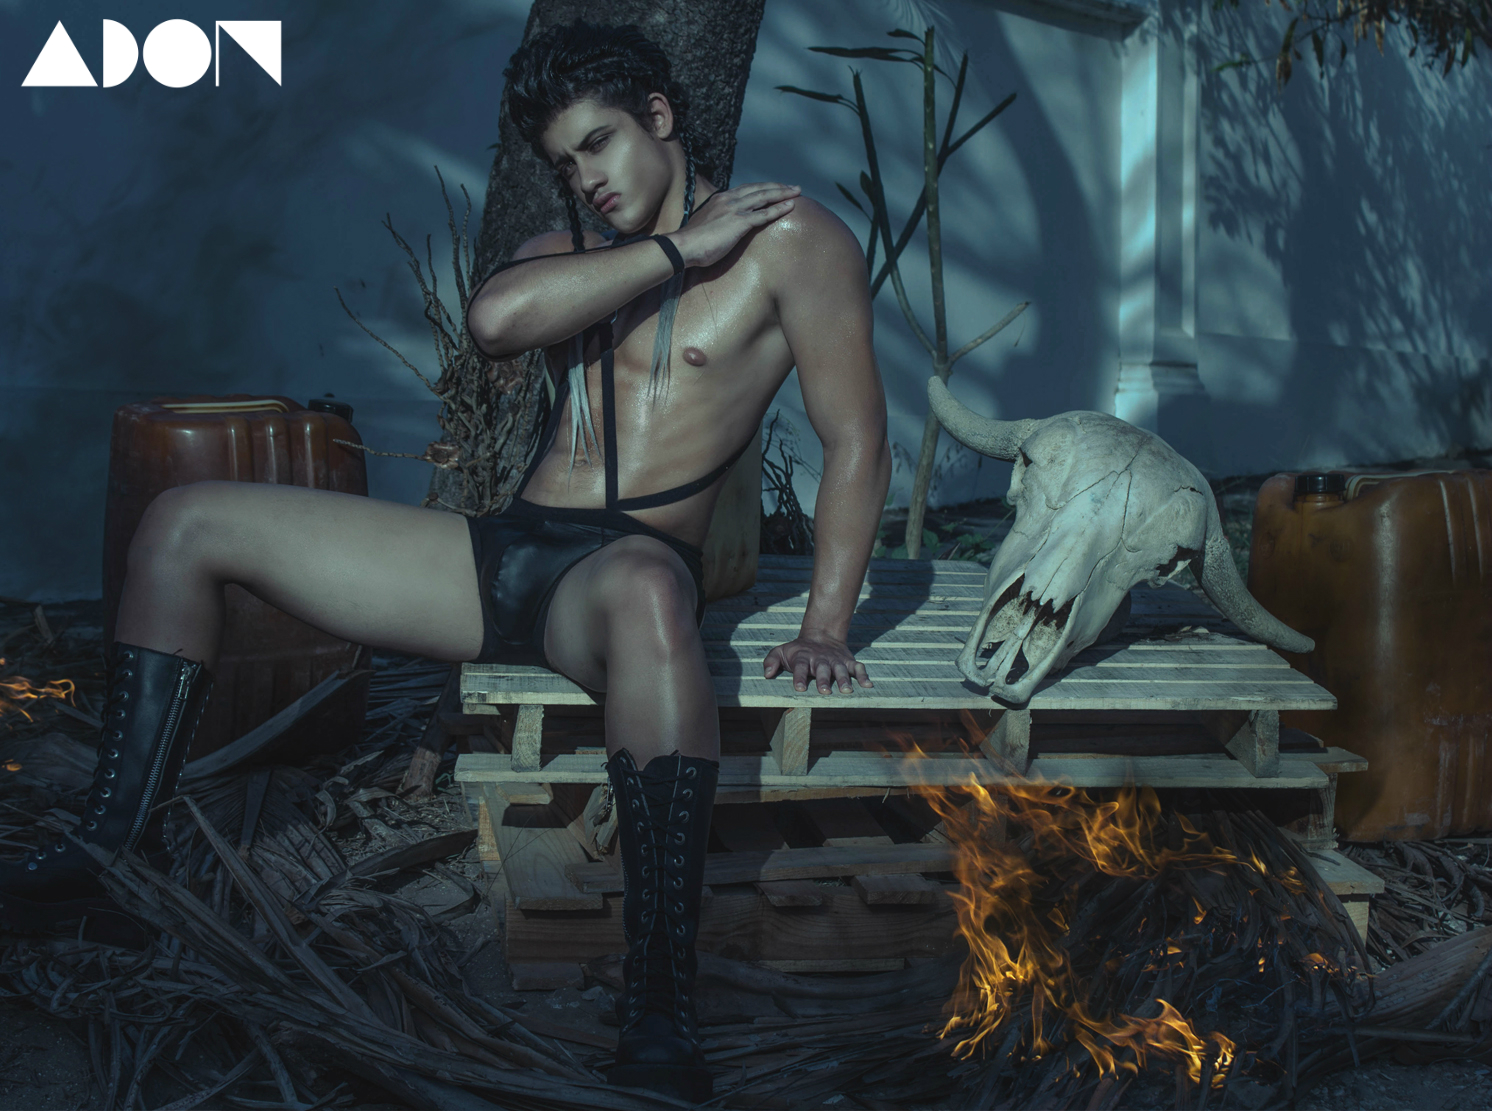 Adon Exclusive: Model Néstor Cisneros By AGARES